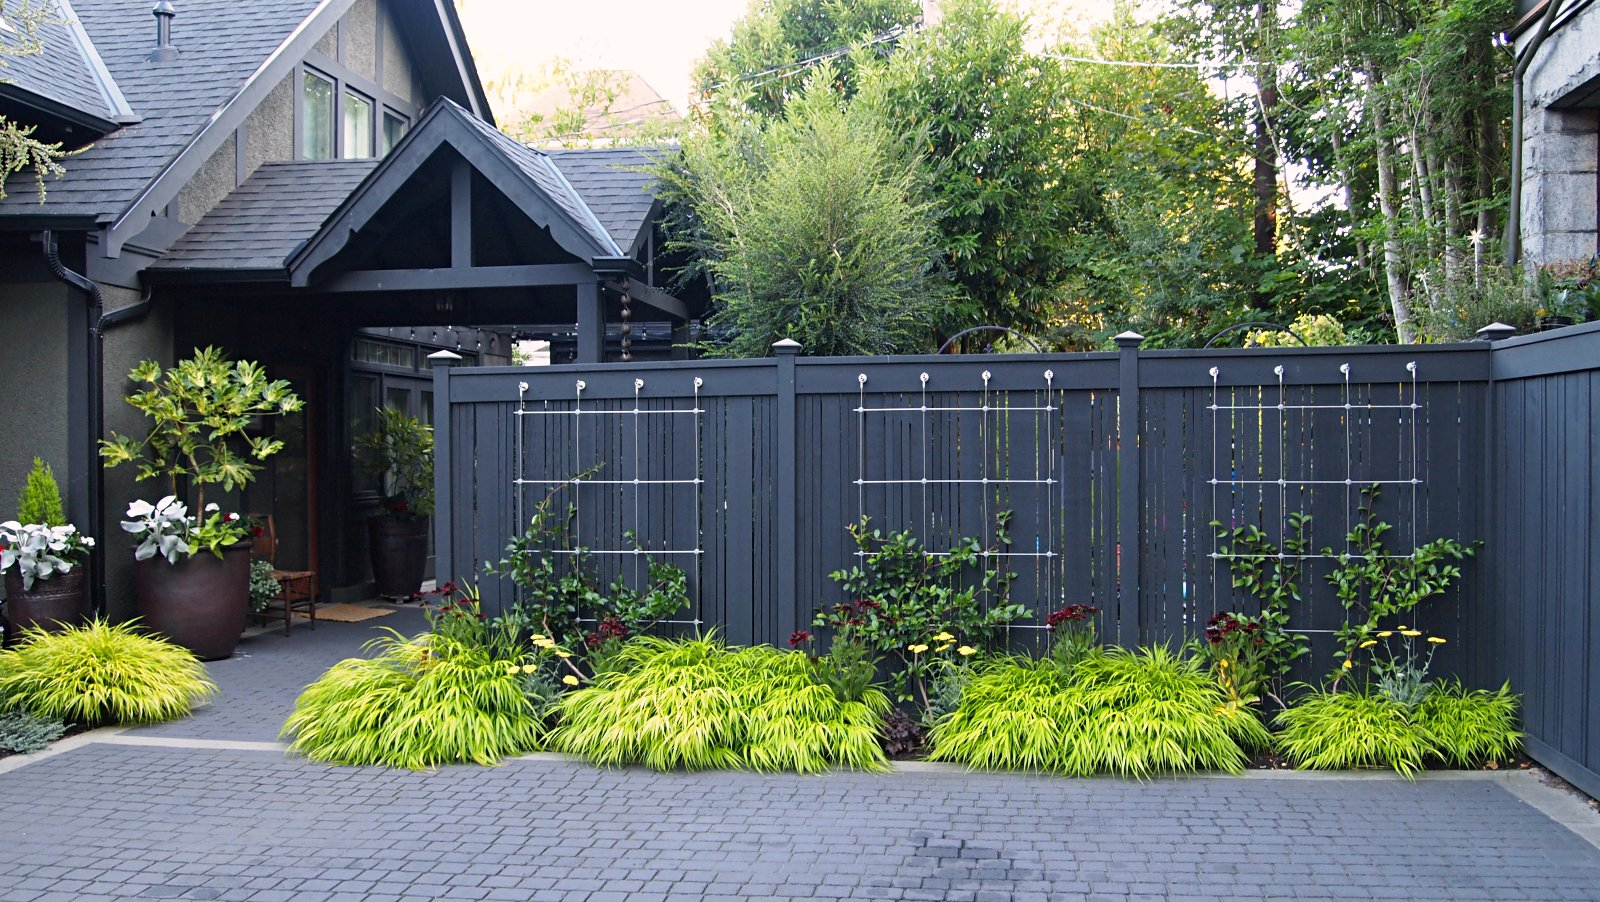 LOW PROFILE WIRE TRELLISING SHOWS OFF FENCING